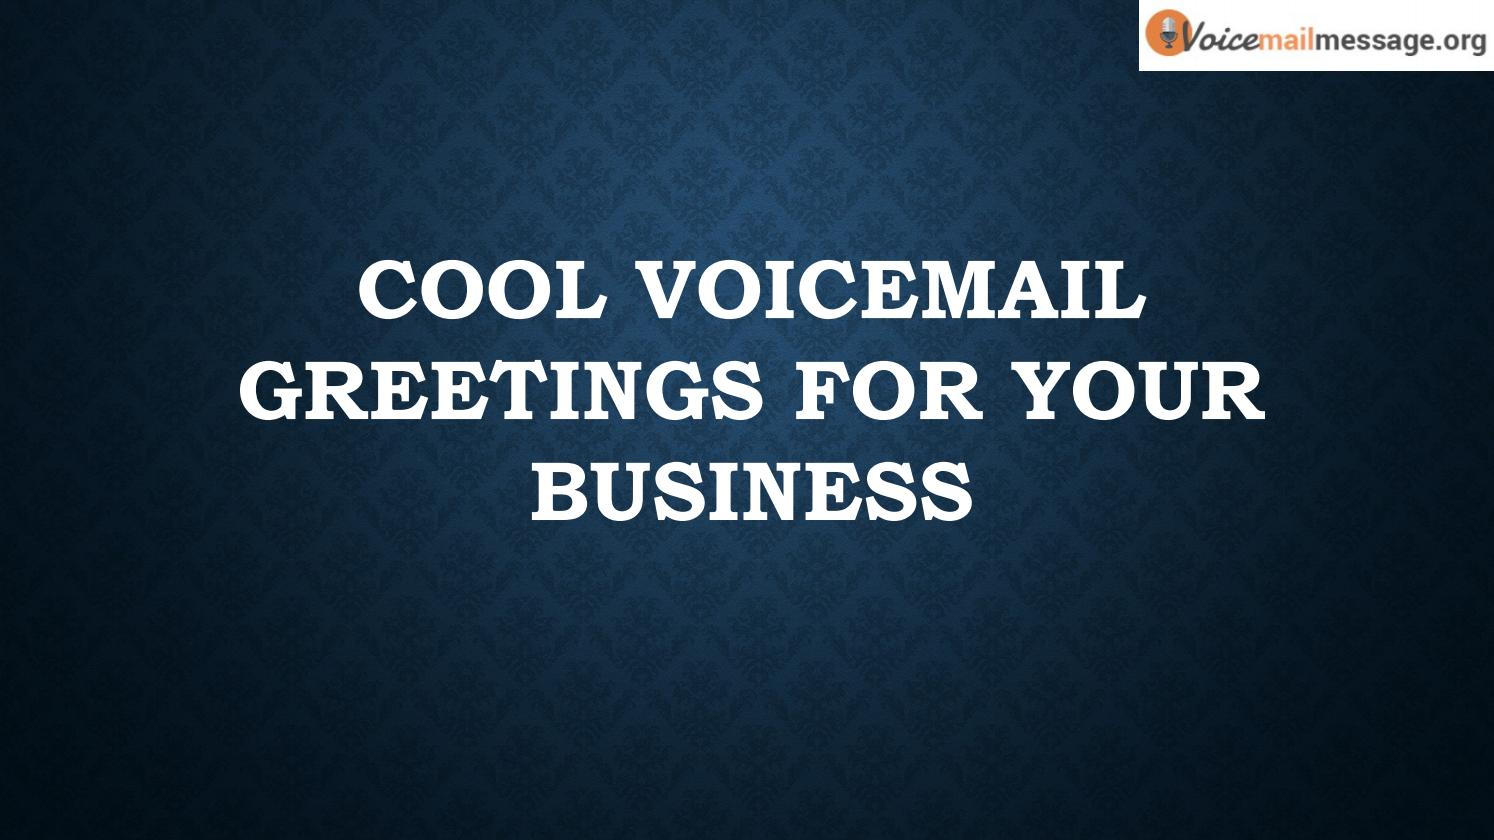 Cool voicemail greetings for your business by voicemail message issuu m4hsunfo